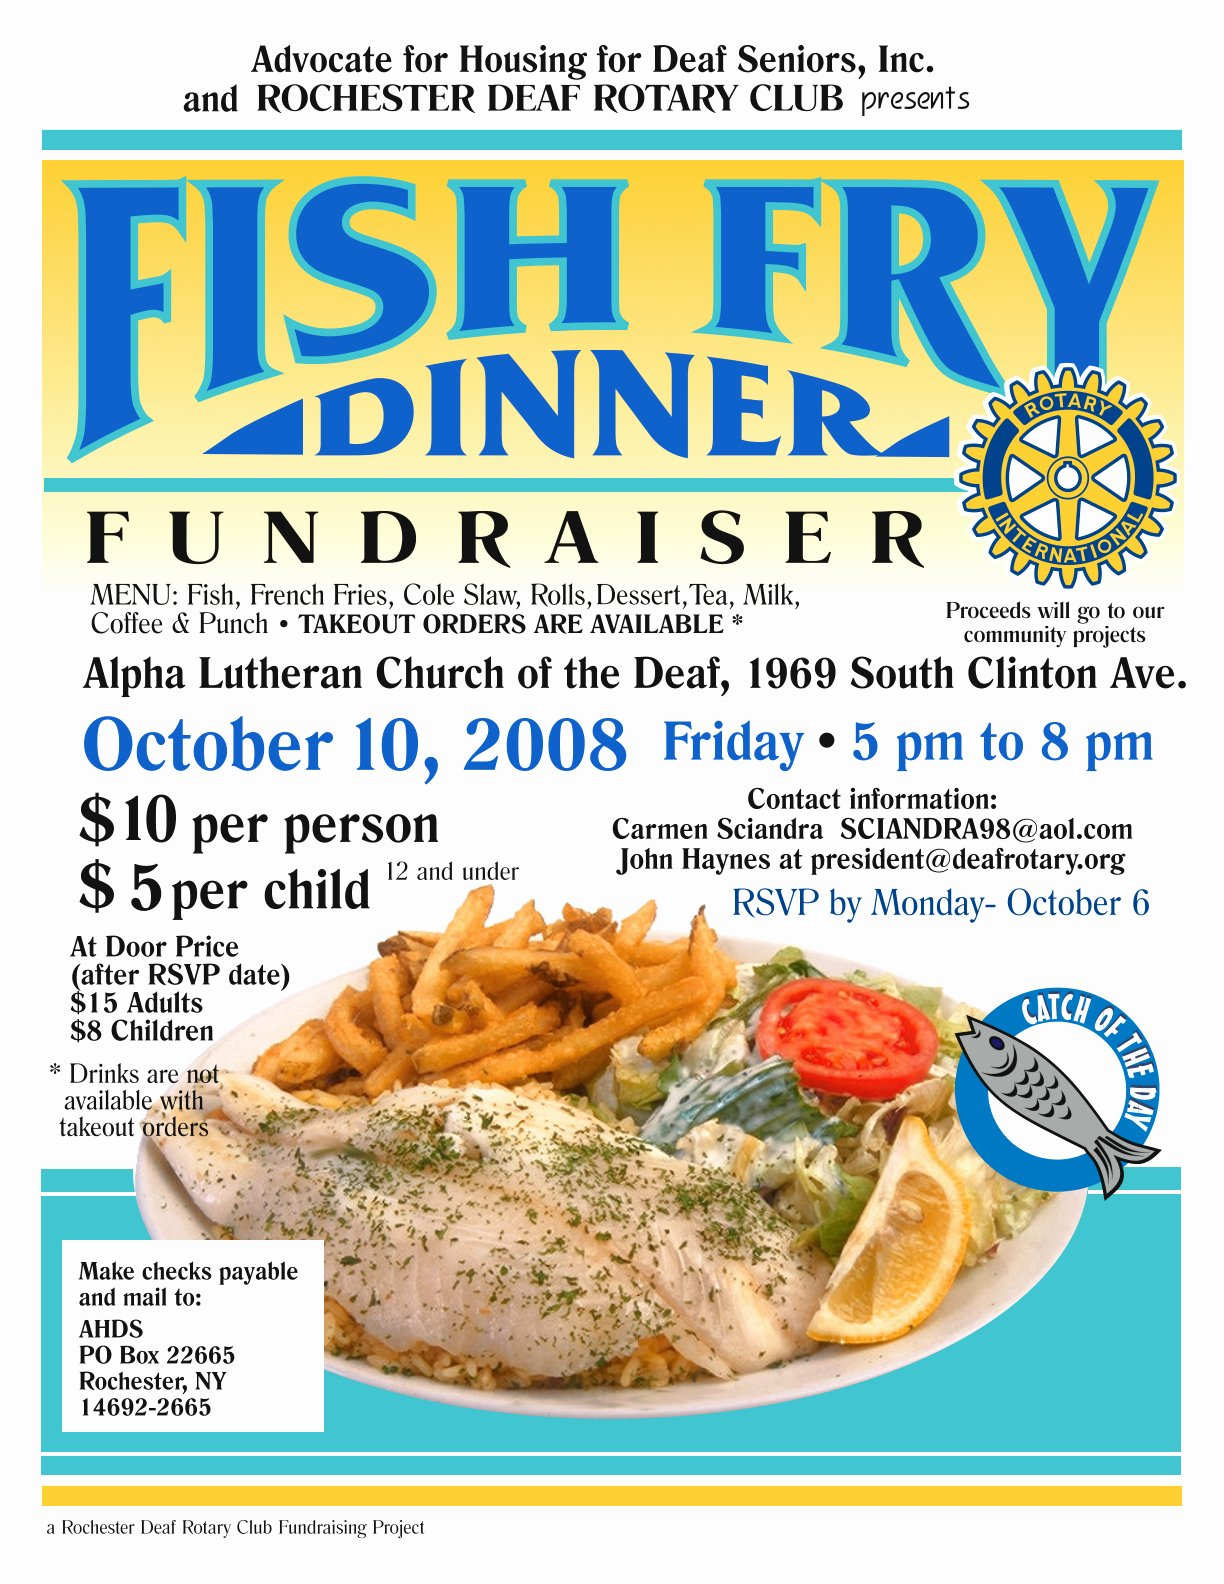 Fish Fry Fundraiser Flyer Luxury Fish Fry Dinner event October 10 2008